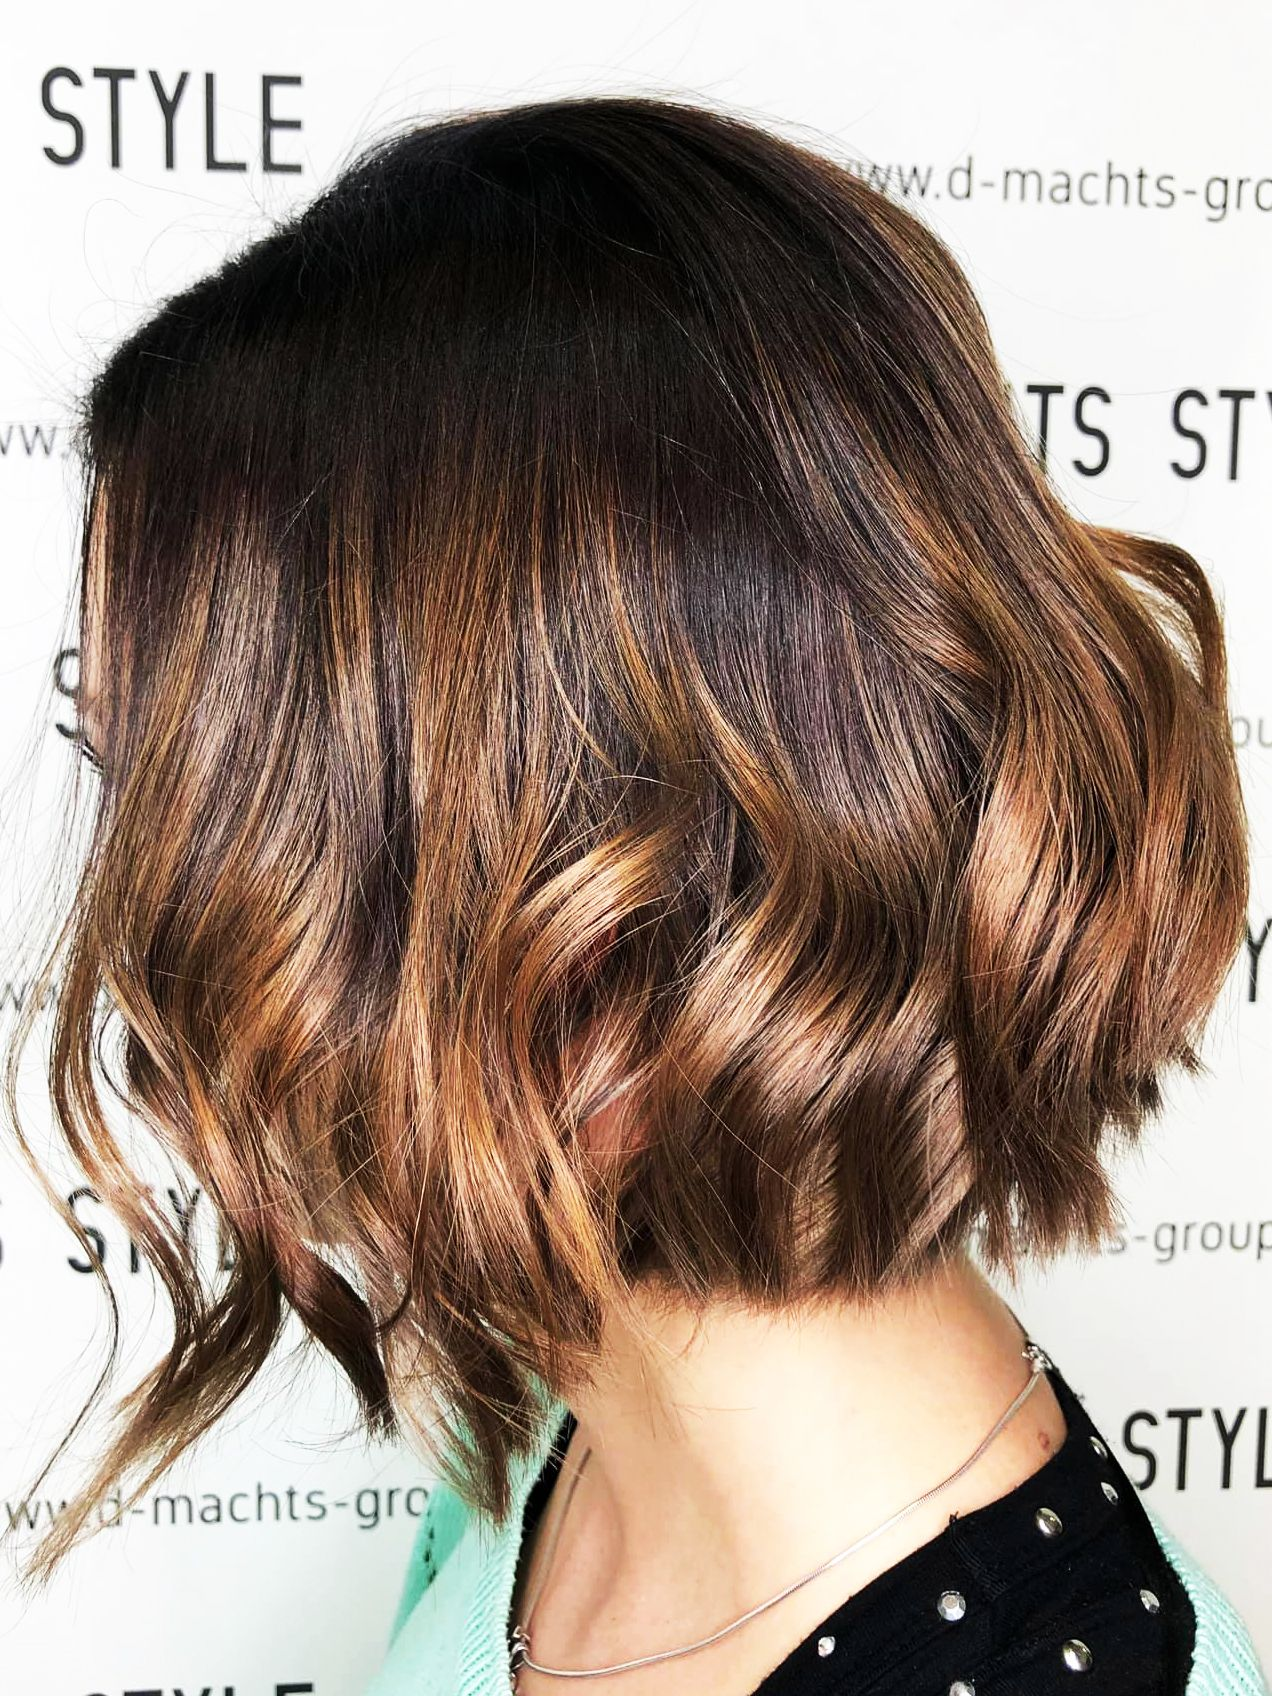 Long Bob Haircut Brown Hair Color D Machts Style Alexa